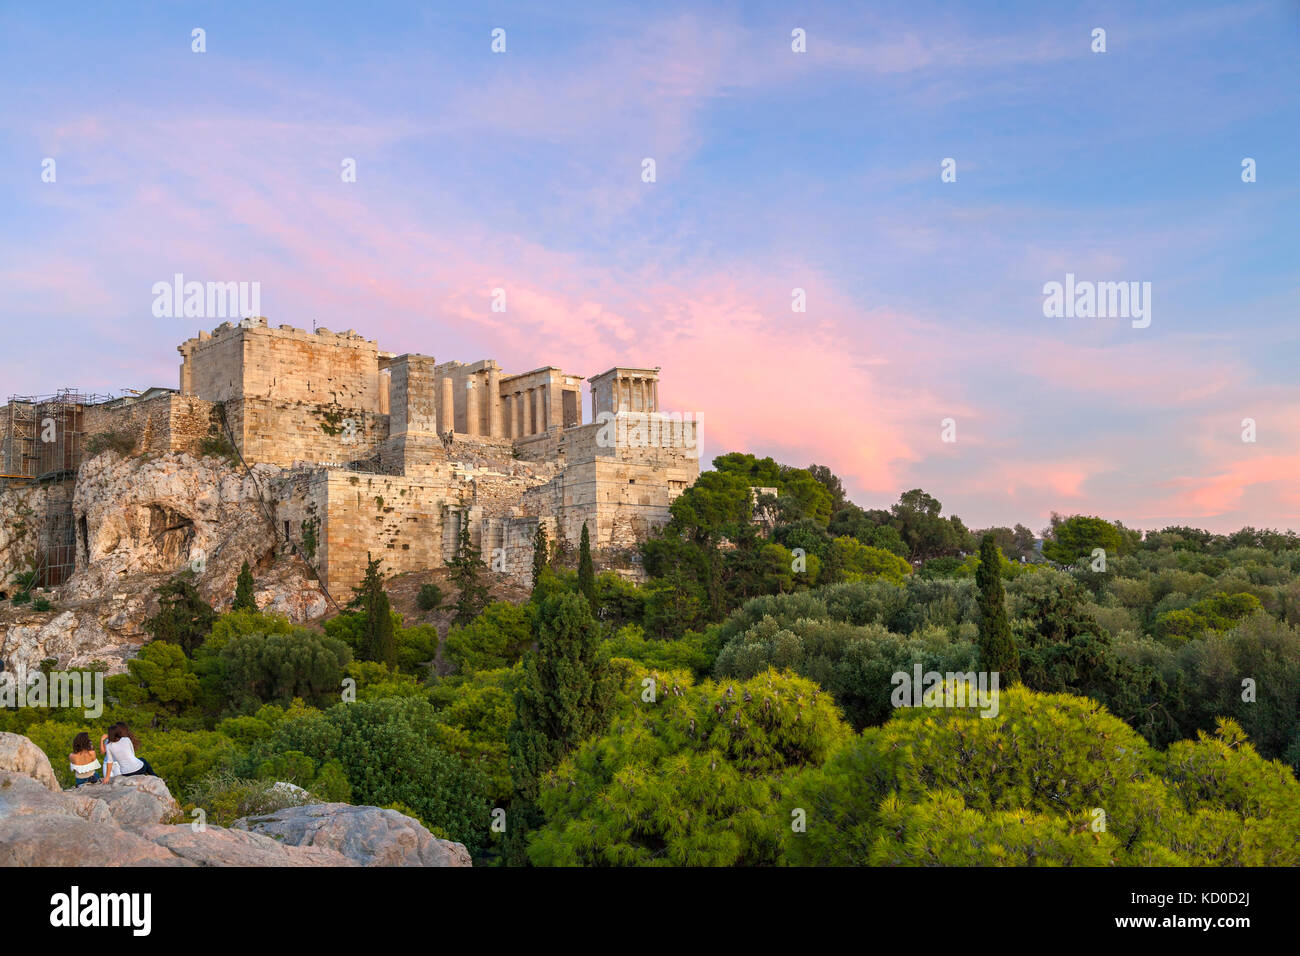 View of the Acropolis, in Athens, Greece. - Stock Image